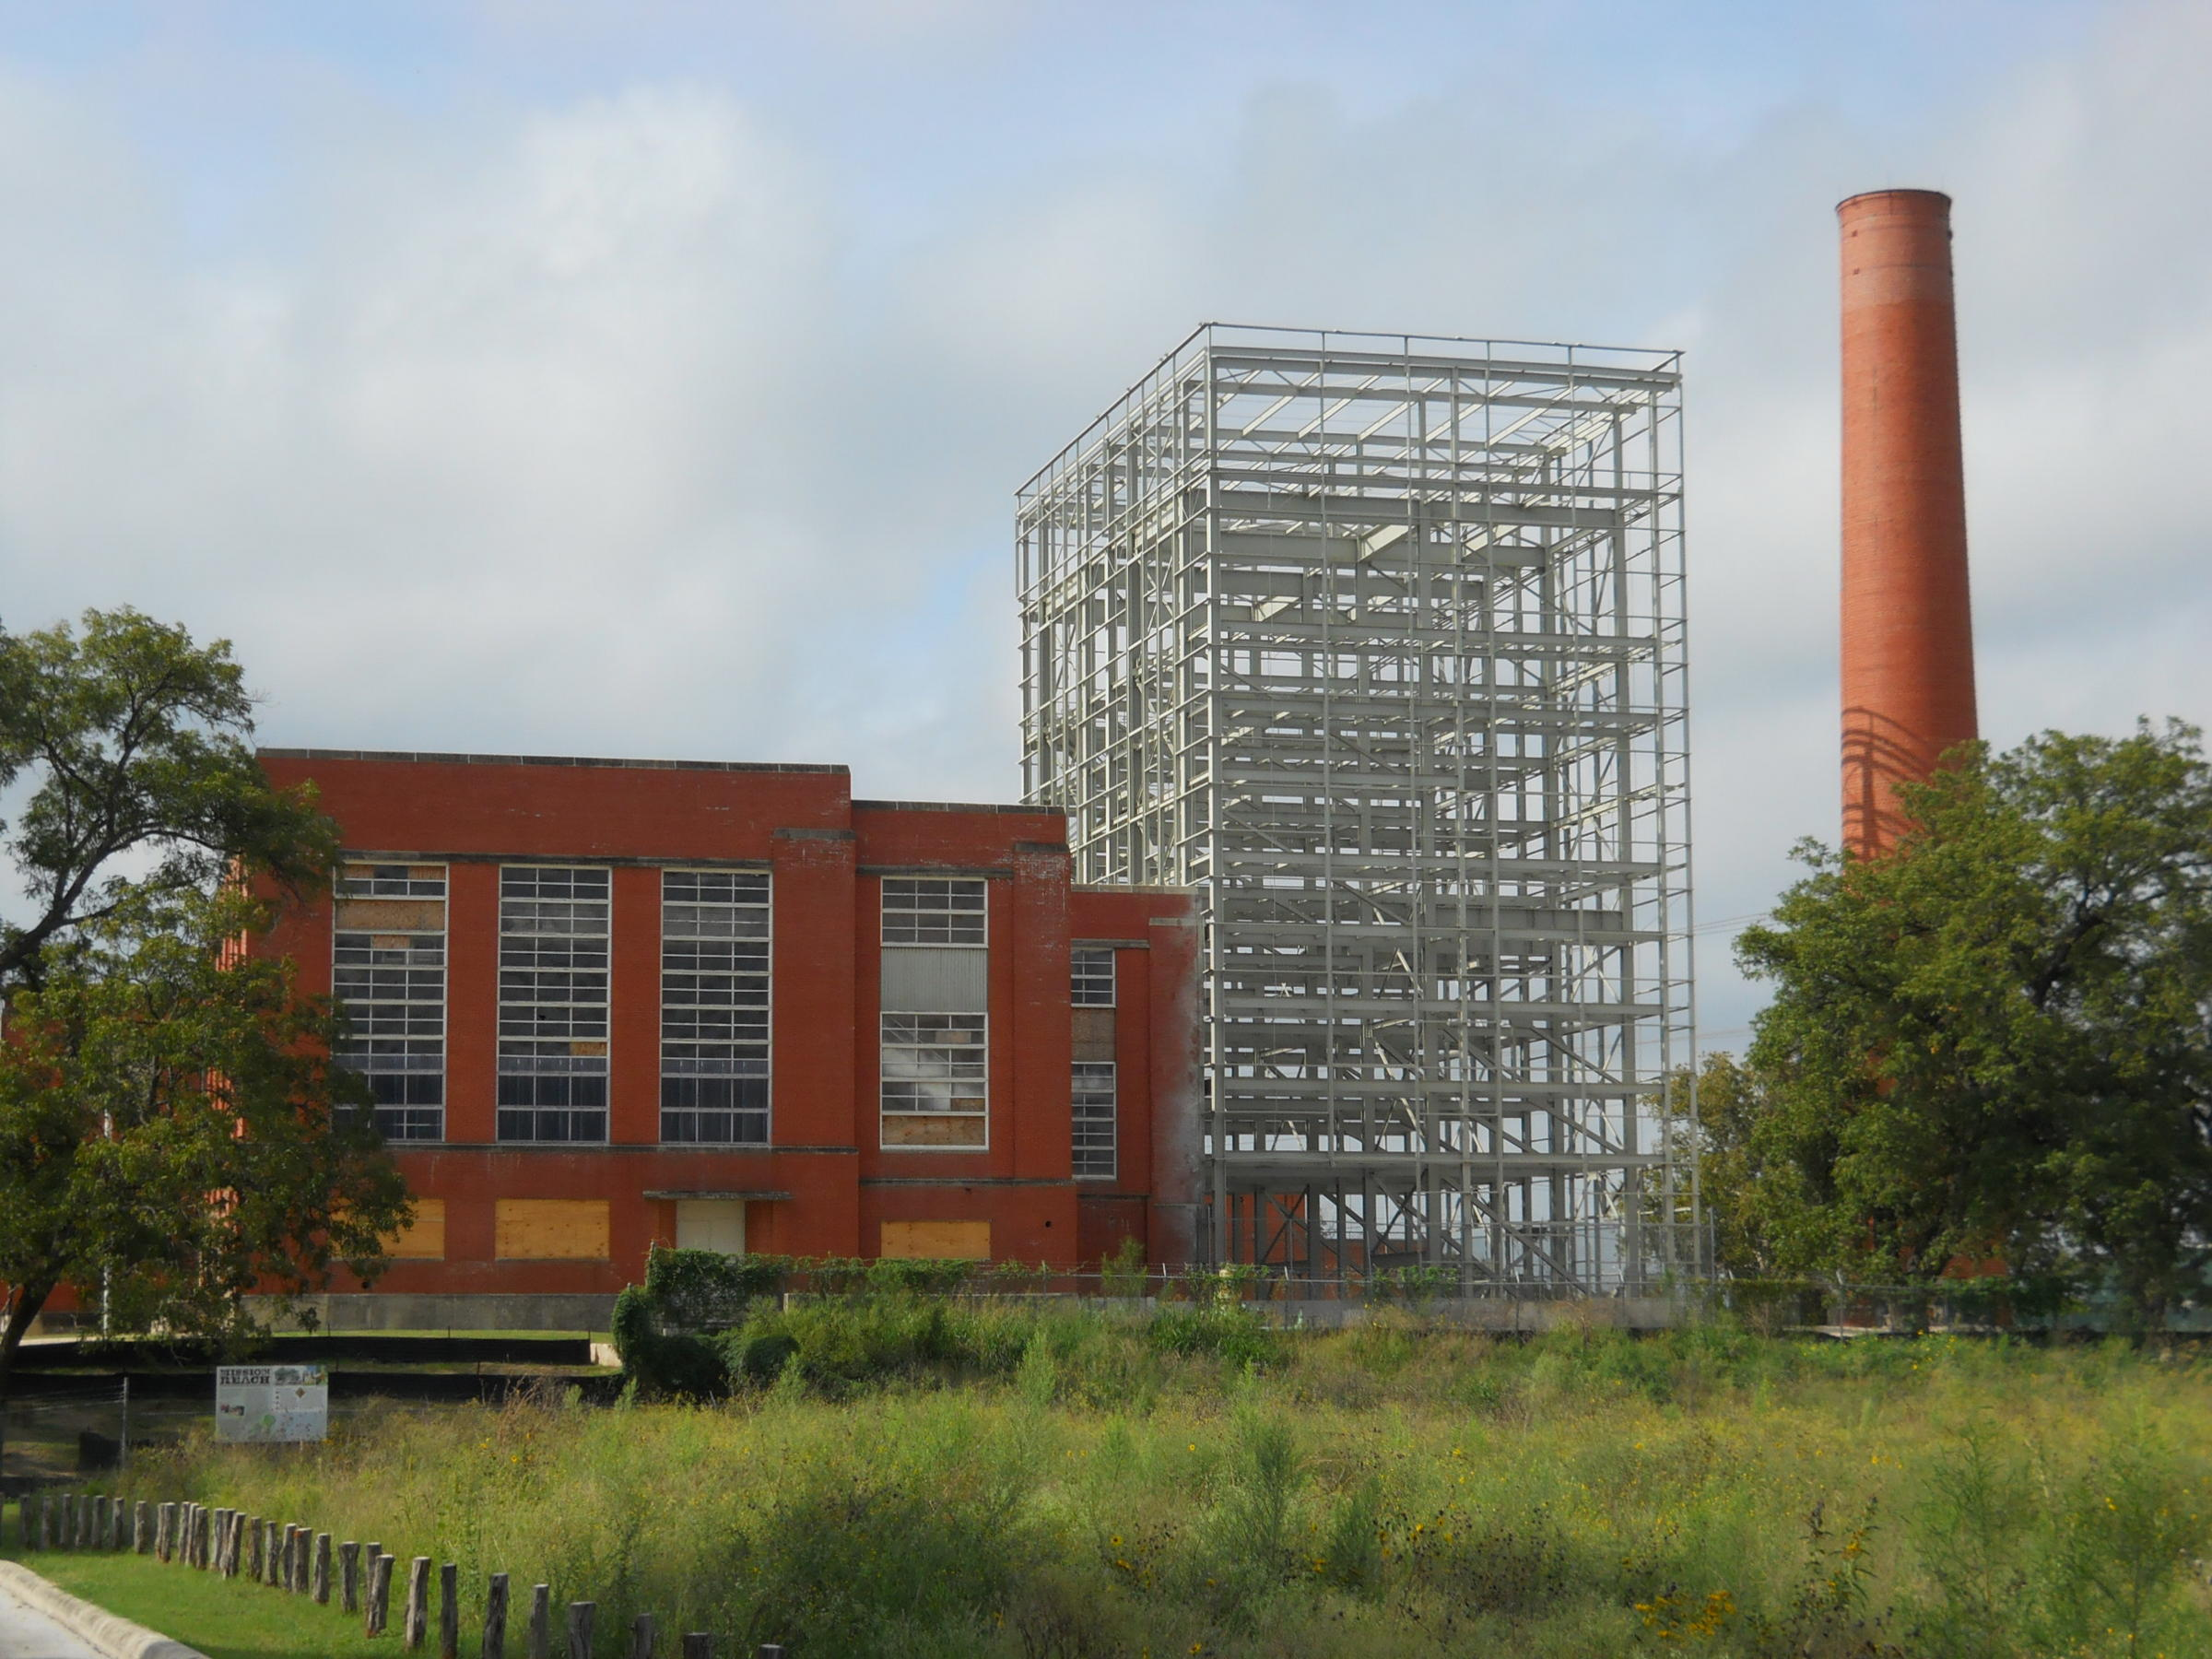 Mission Road Power Plant Next in Line for Restoration